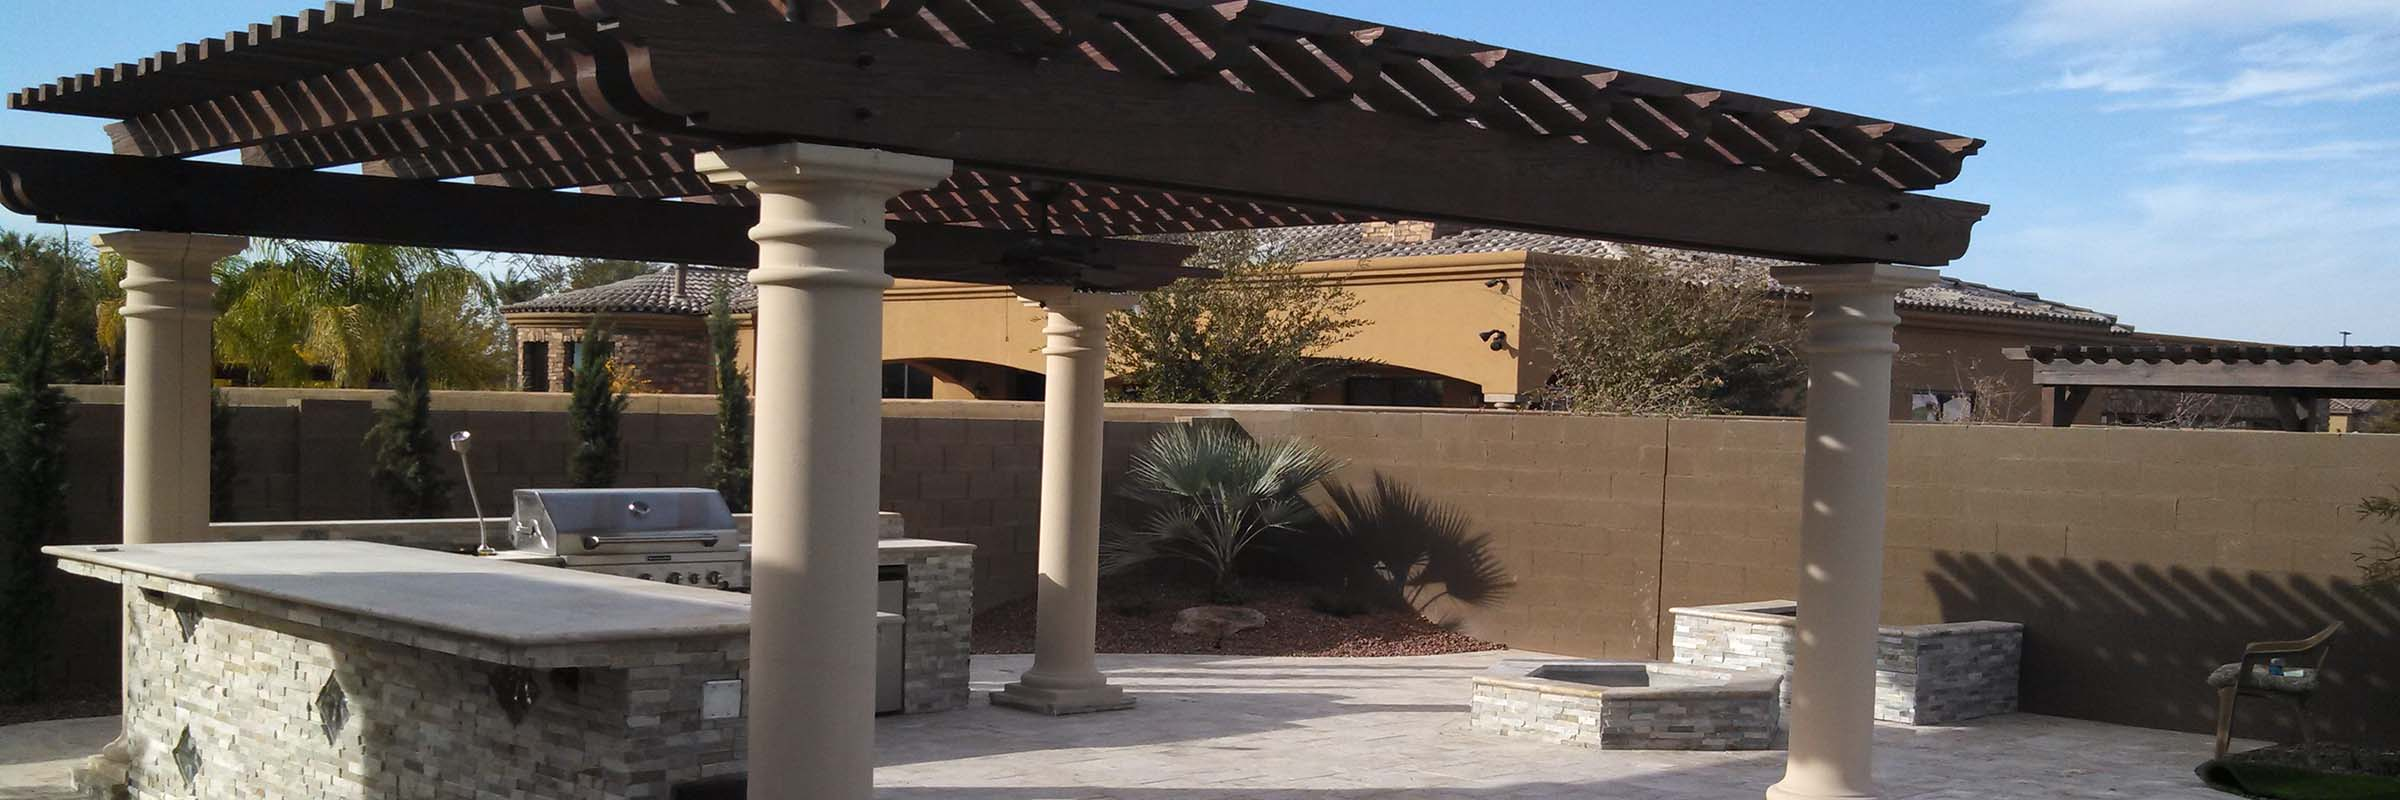 travertine-patio-pergola-2